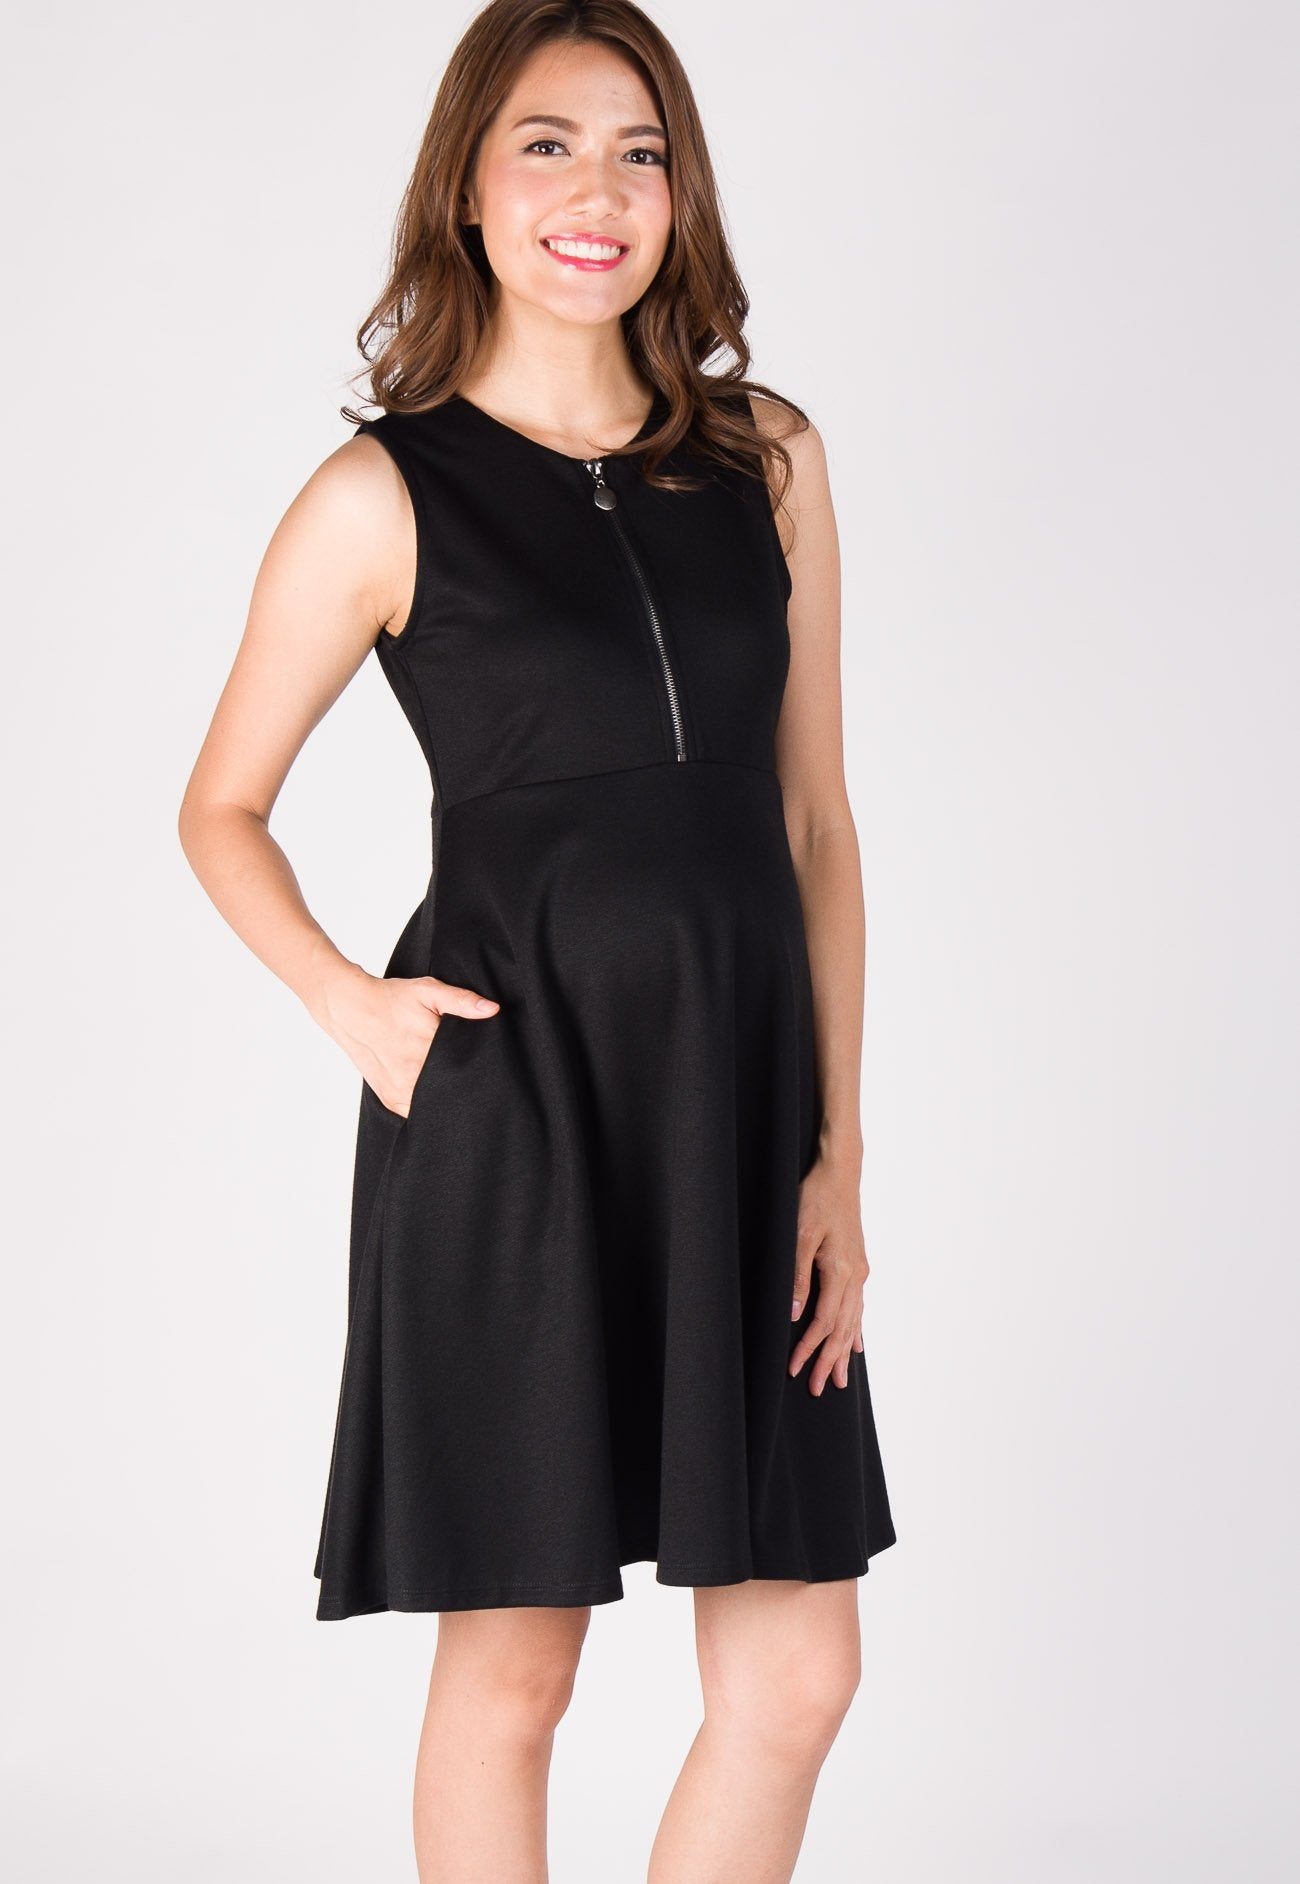 Fit and Flair Front Zip Nursing Dress in Black  by Jump Eat Cry - Maternity and nursing wear